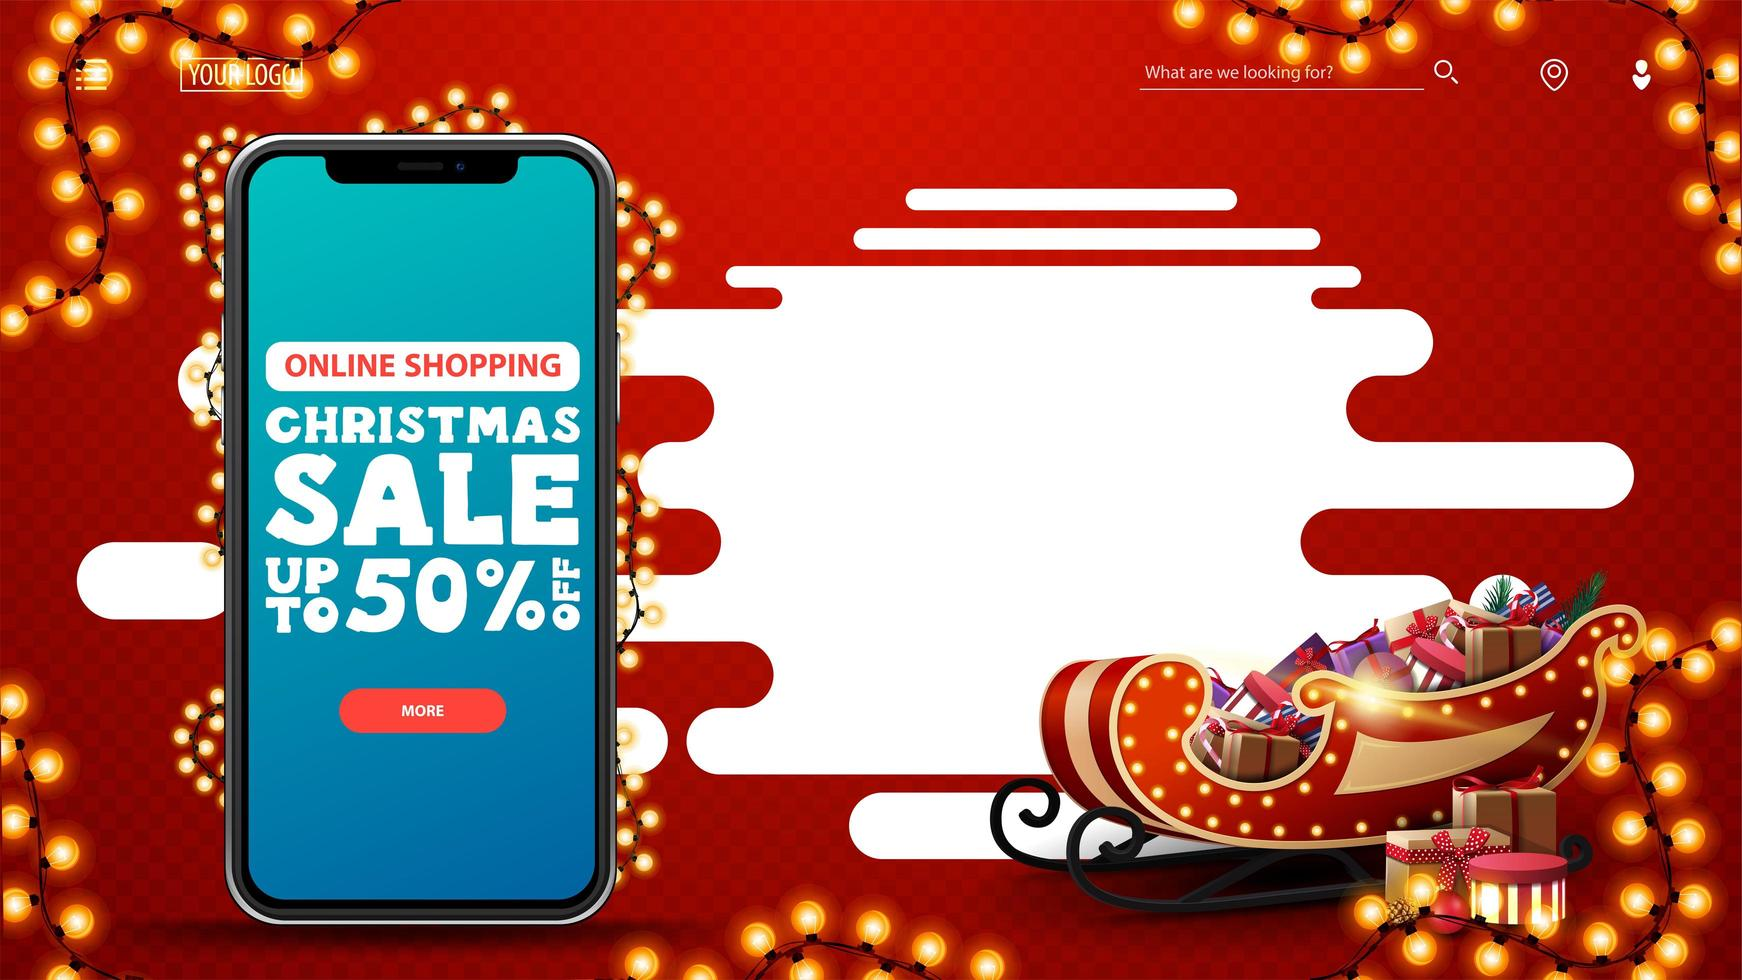 Online Shopping, Christmas sale, up to 50 off, red discount template with smartphone with offer and button on screen, copy space and Santa Sleigh with presents vector